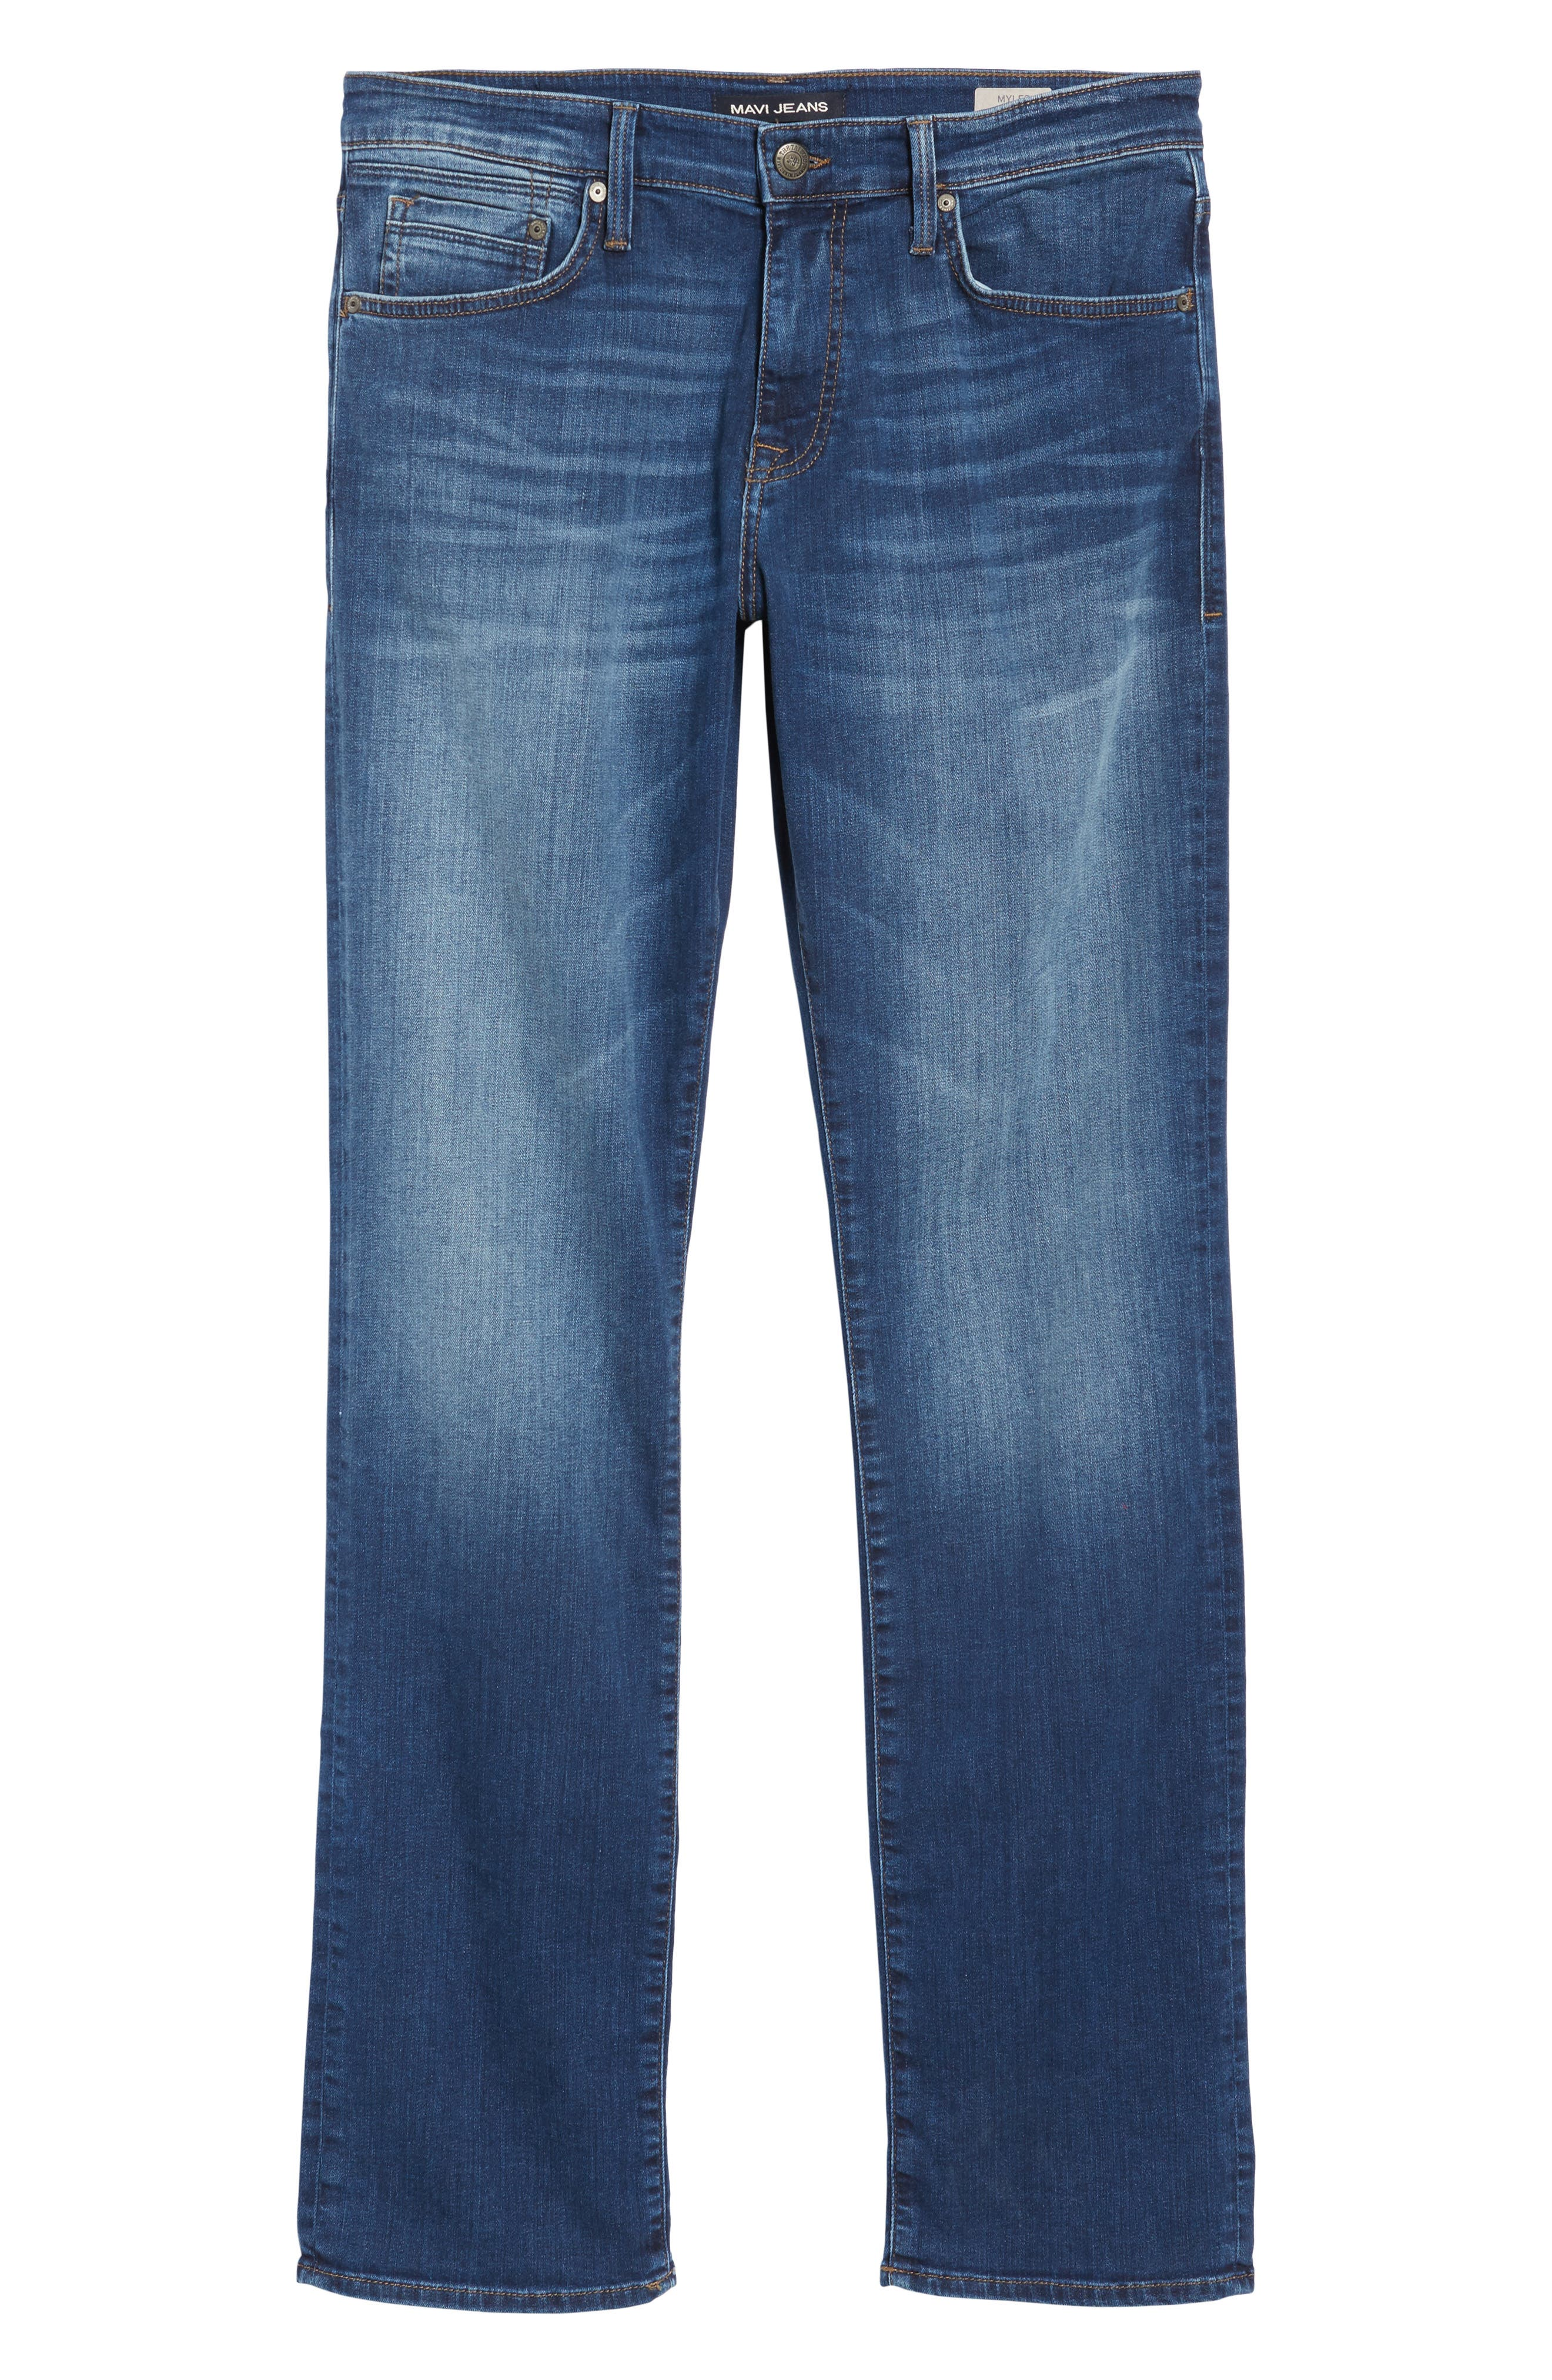 Myles Straight Fit Jeans,                             Alternate thumbnail 6, color,                             401